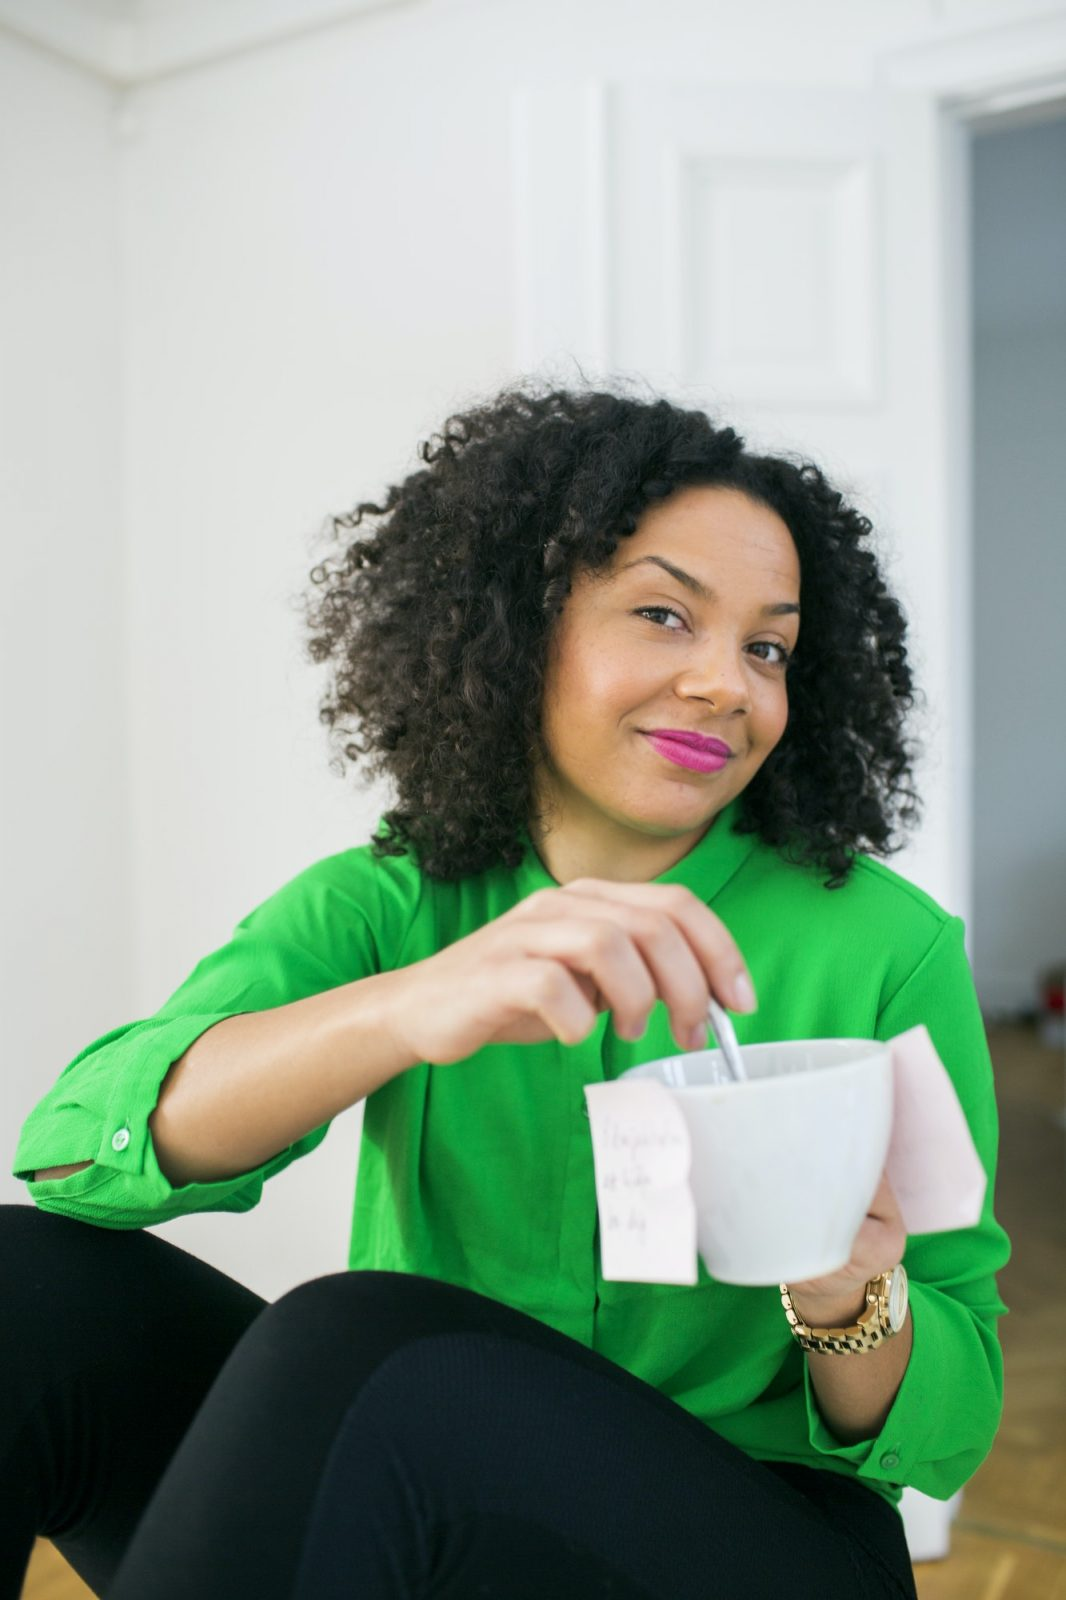 Portrait of young businesswoman with adhesive notes stuck on coffee cup in office